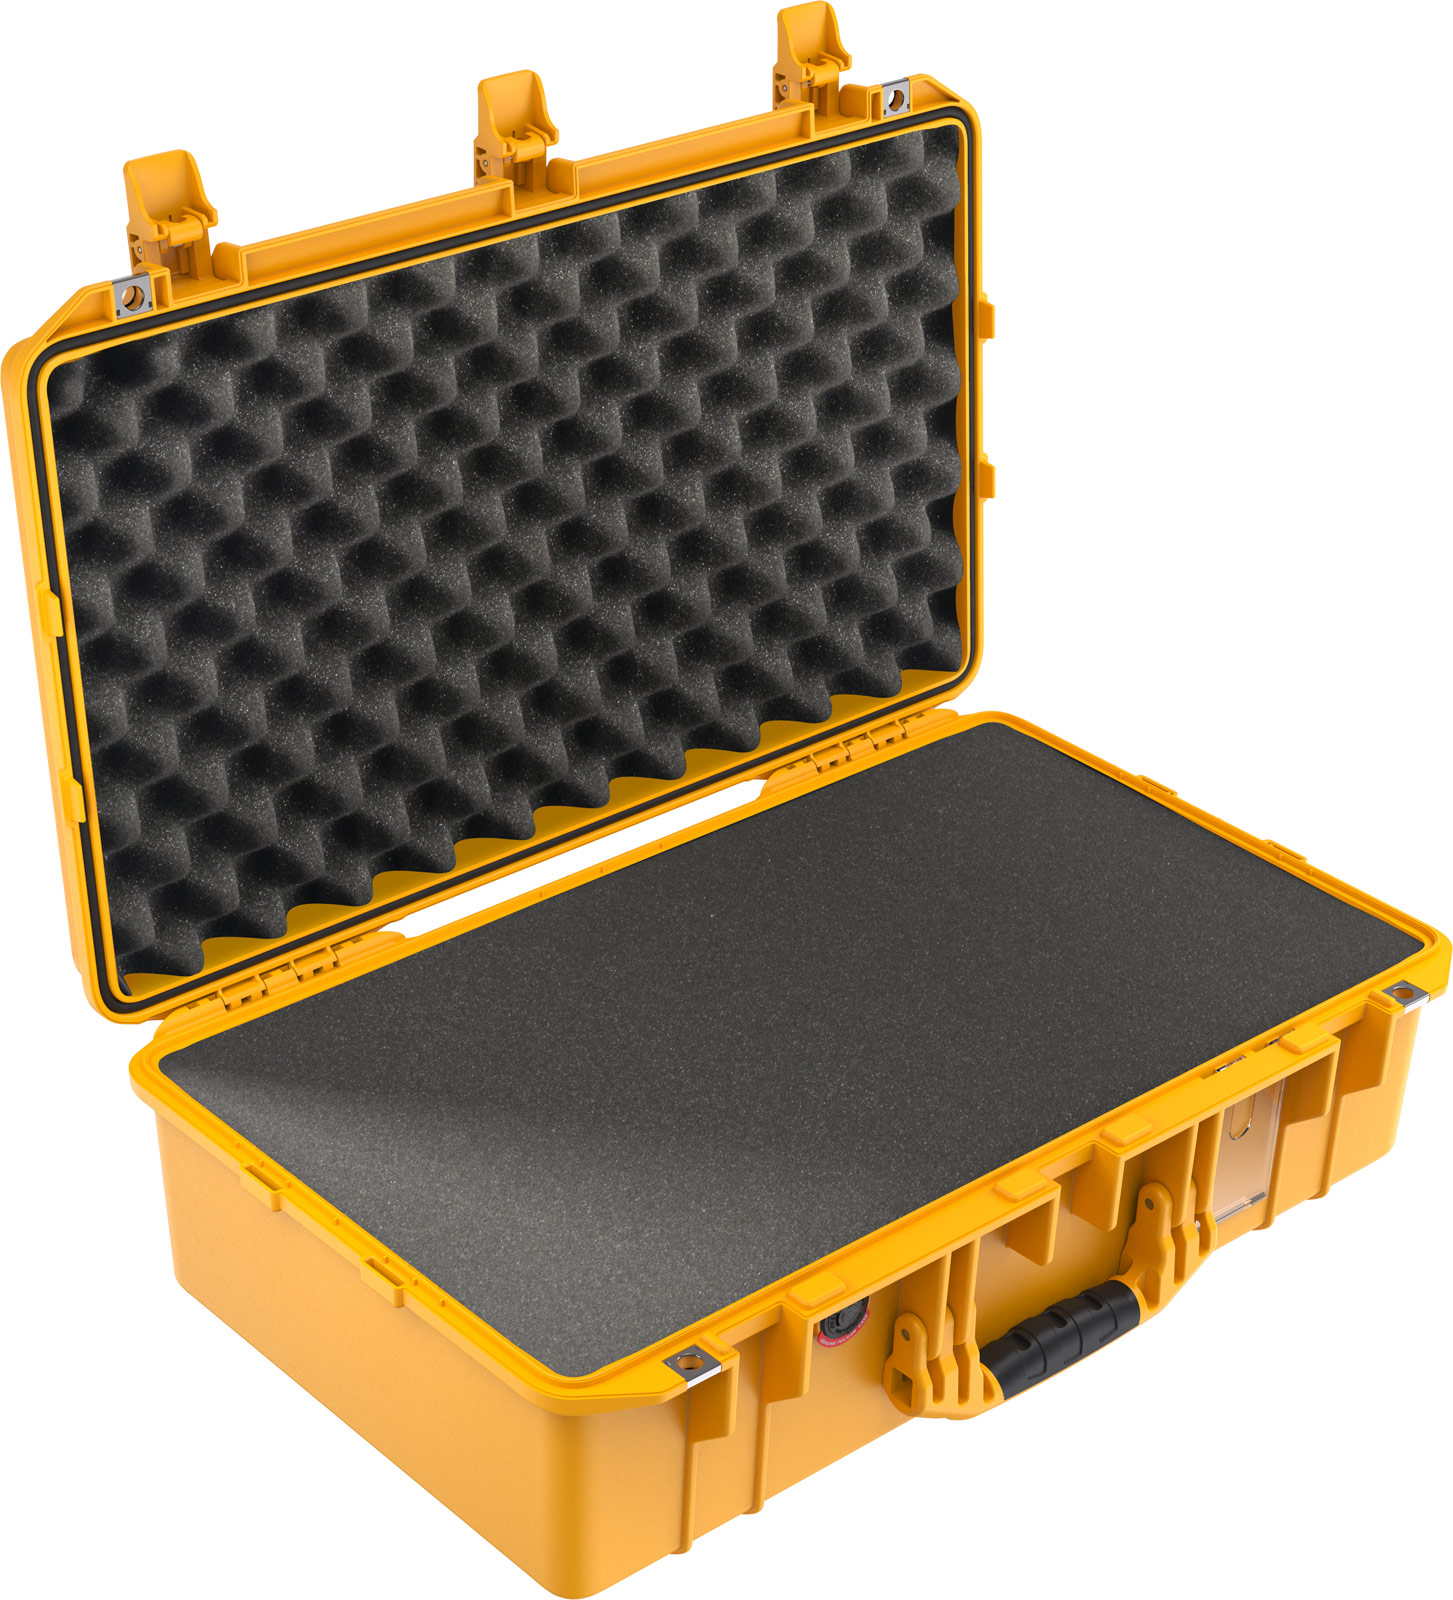 pelican 1555 yellow air lightweight case